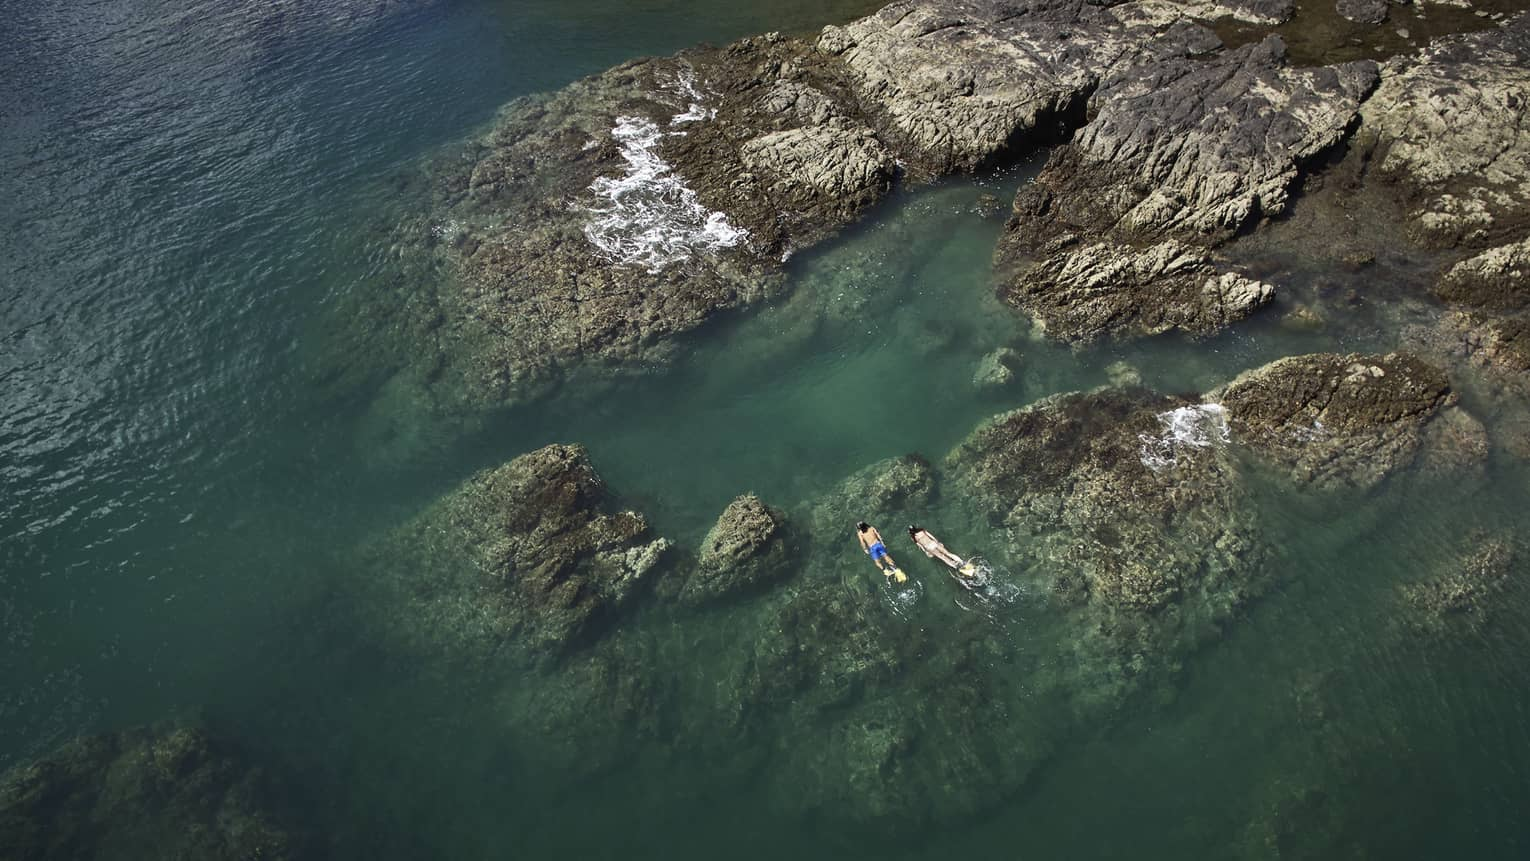 Aerial view of two people snorkelling by large rocks in the ocean